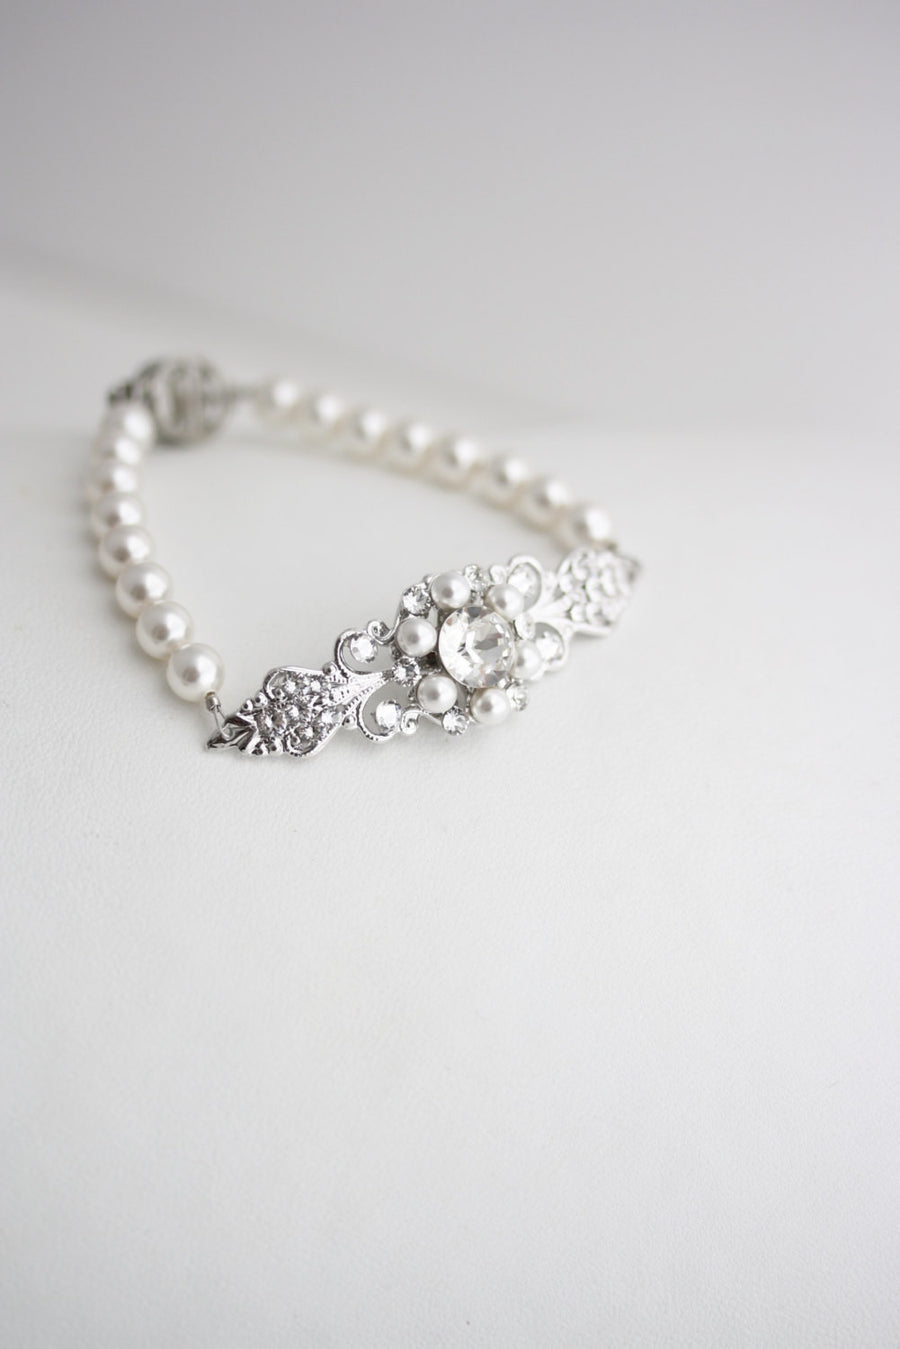 Paris Pearl Wedding Bracelet - Lulu Splendor